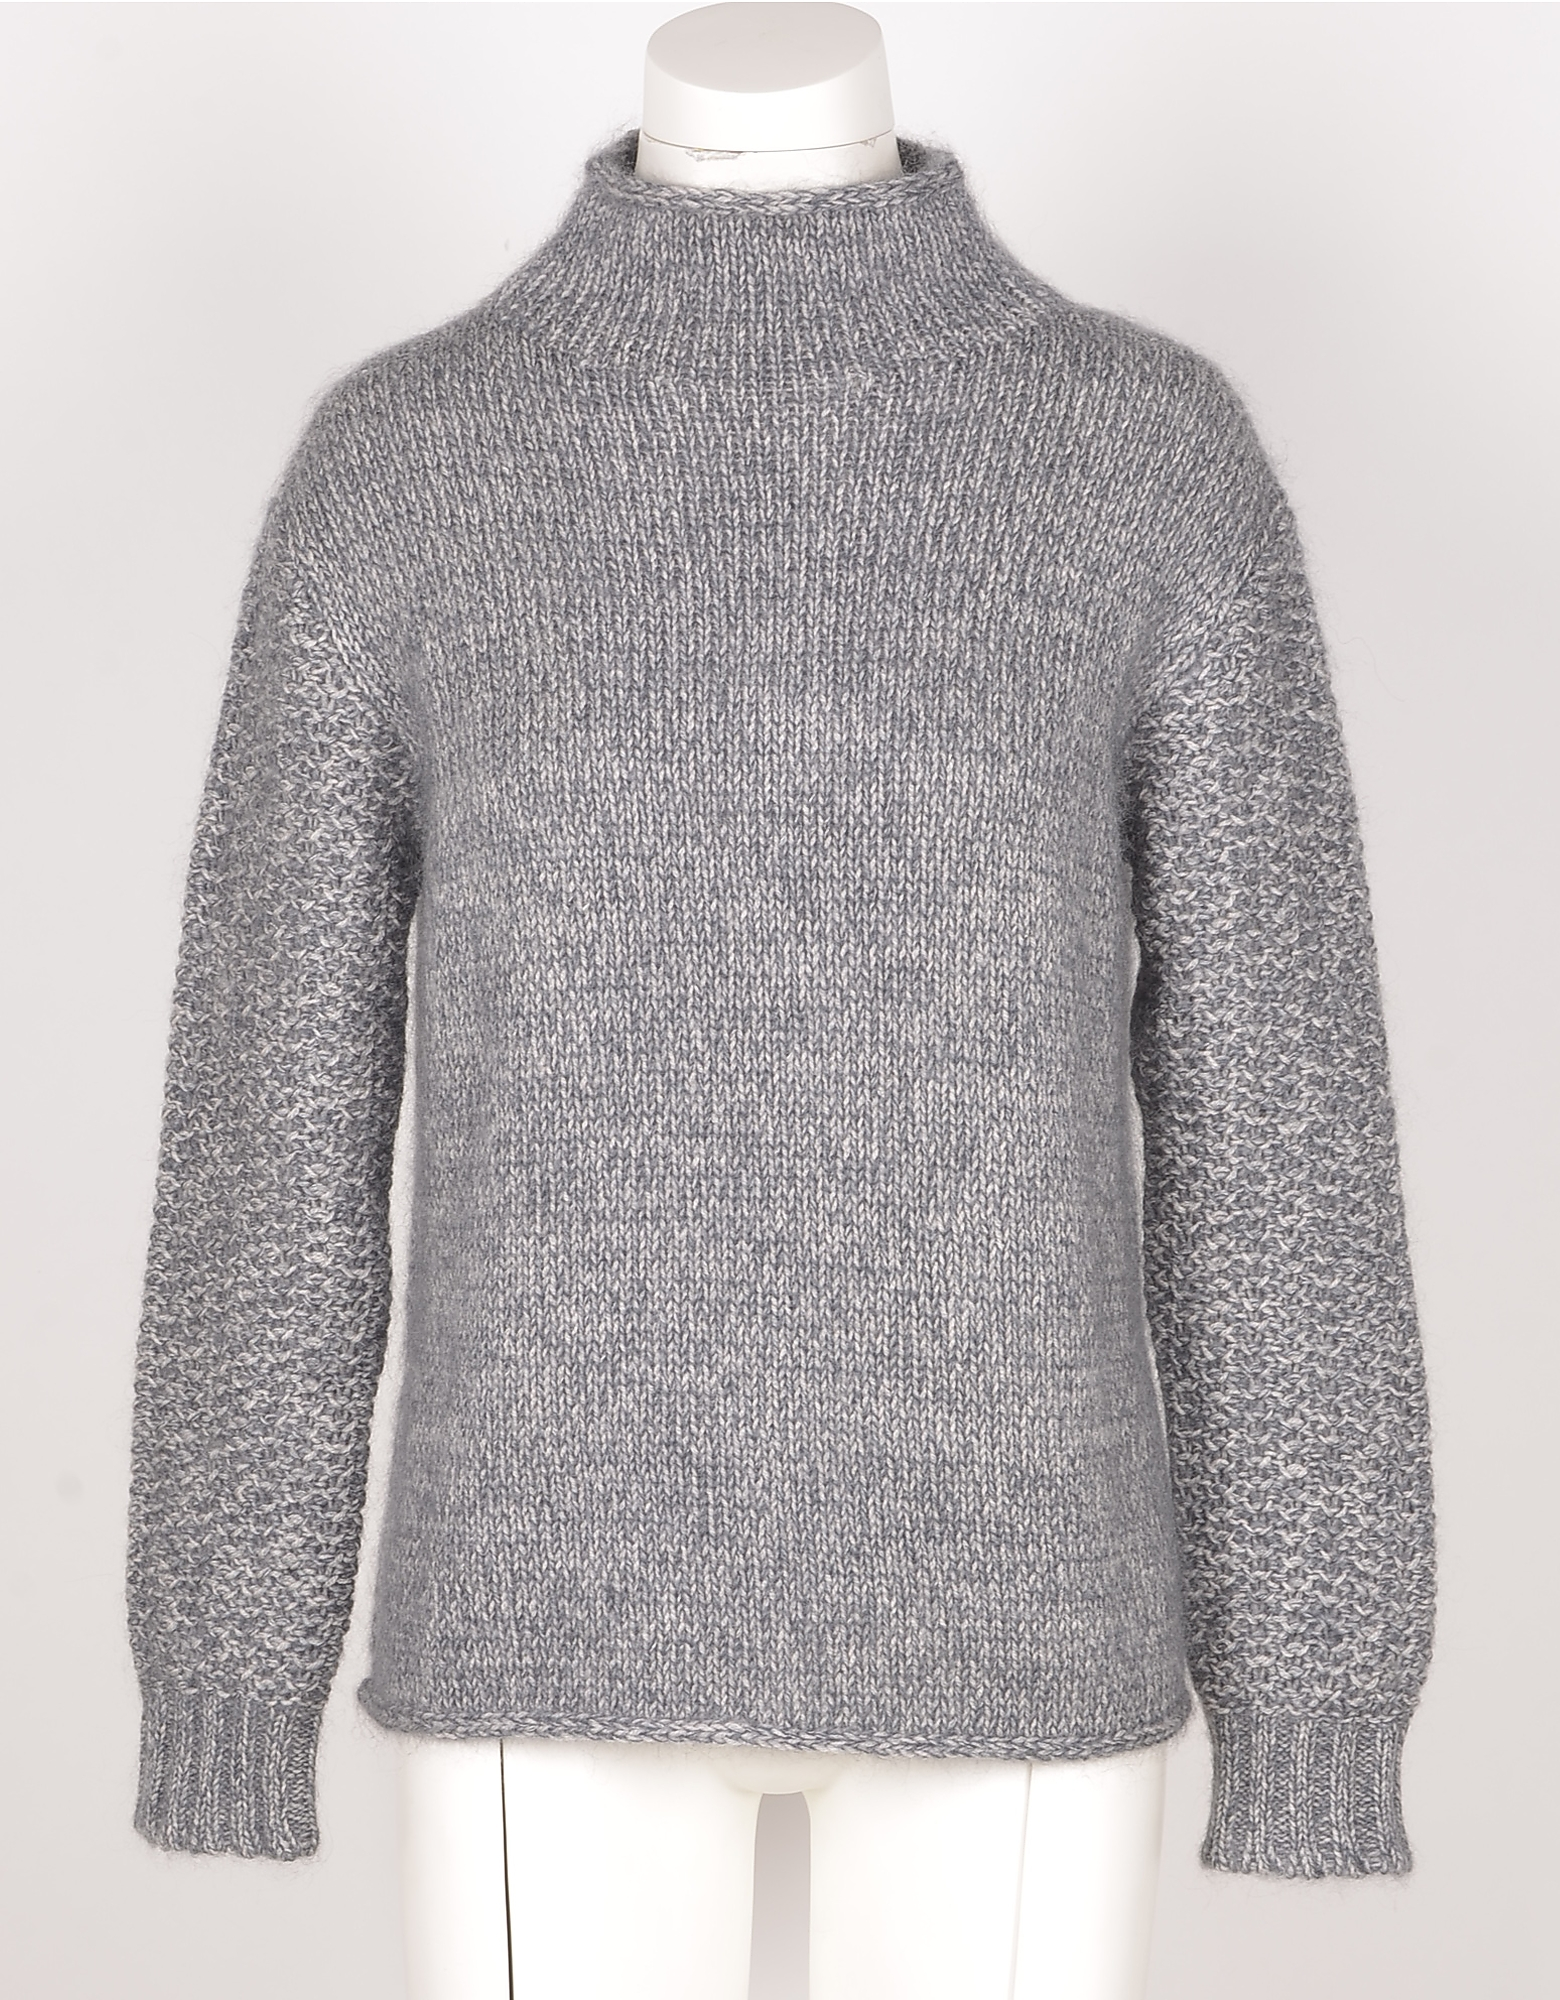 Eleventy Designer Knitwear, Gray Mohair Wool and Silk Women's Sweater